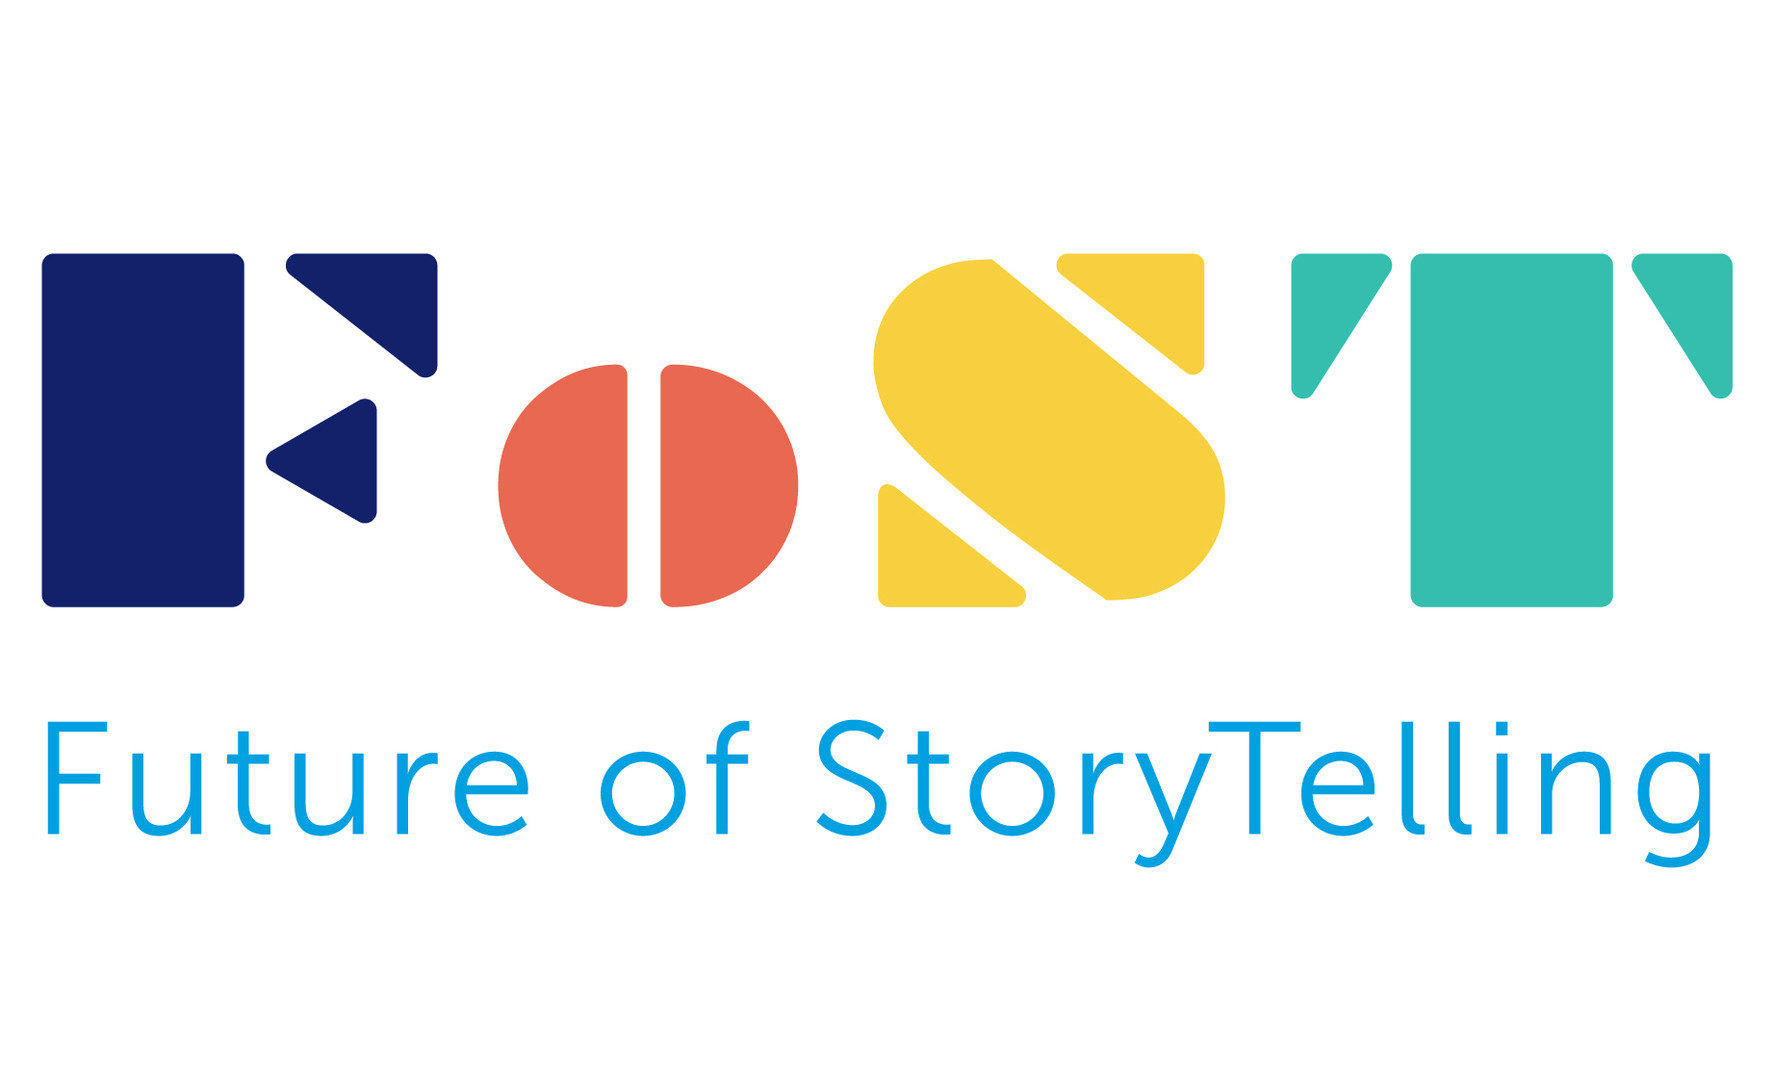 FOST (Future of Storytelling)